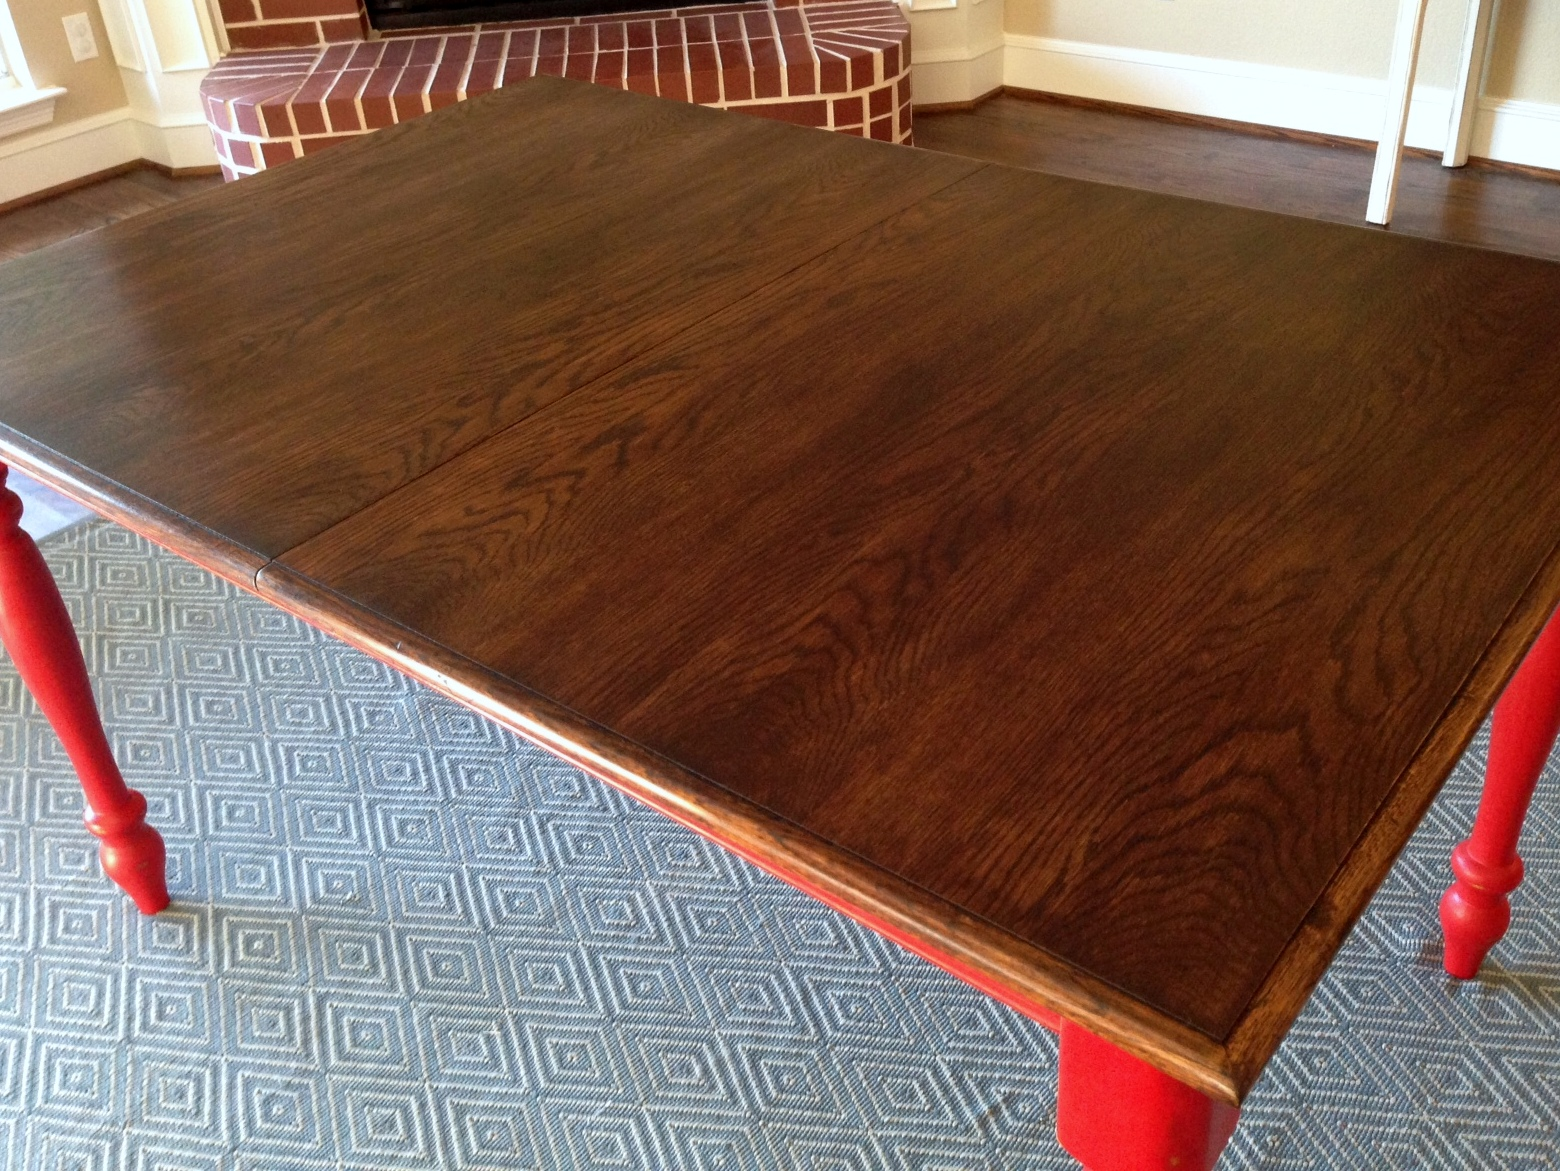 Oak Table Turned Farmhouse Table Red Legs Restained Top Detail ...